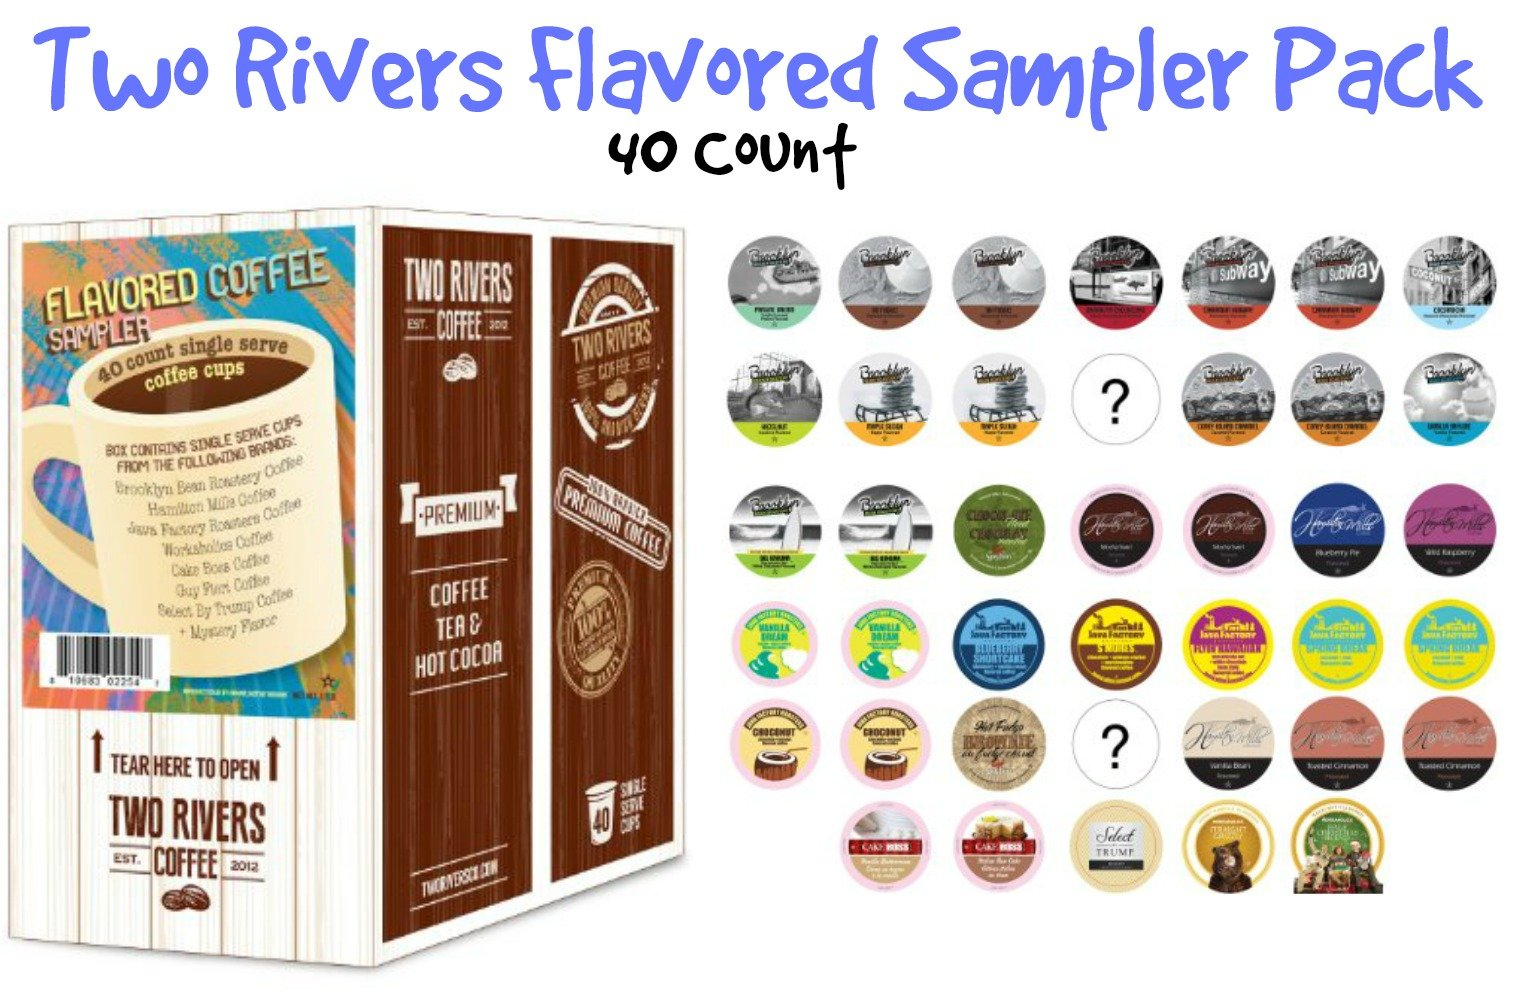 Two Rivers Flavored Coffee Single-Cup Sampler Pack for Keurig K-Cup Brewers, 40 Count by Two Rivers LLC (Image #5)